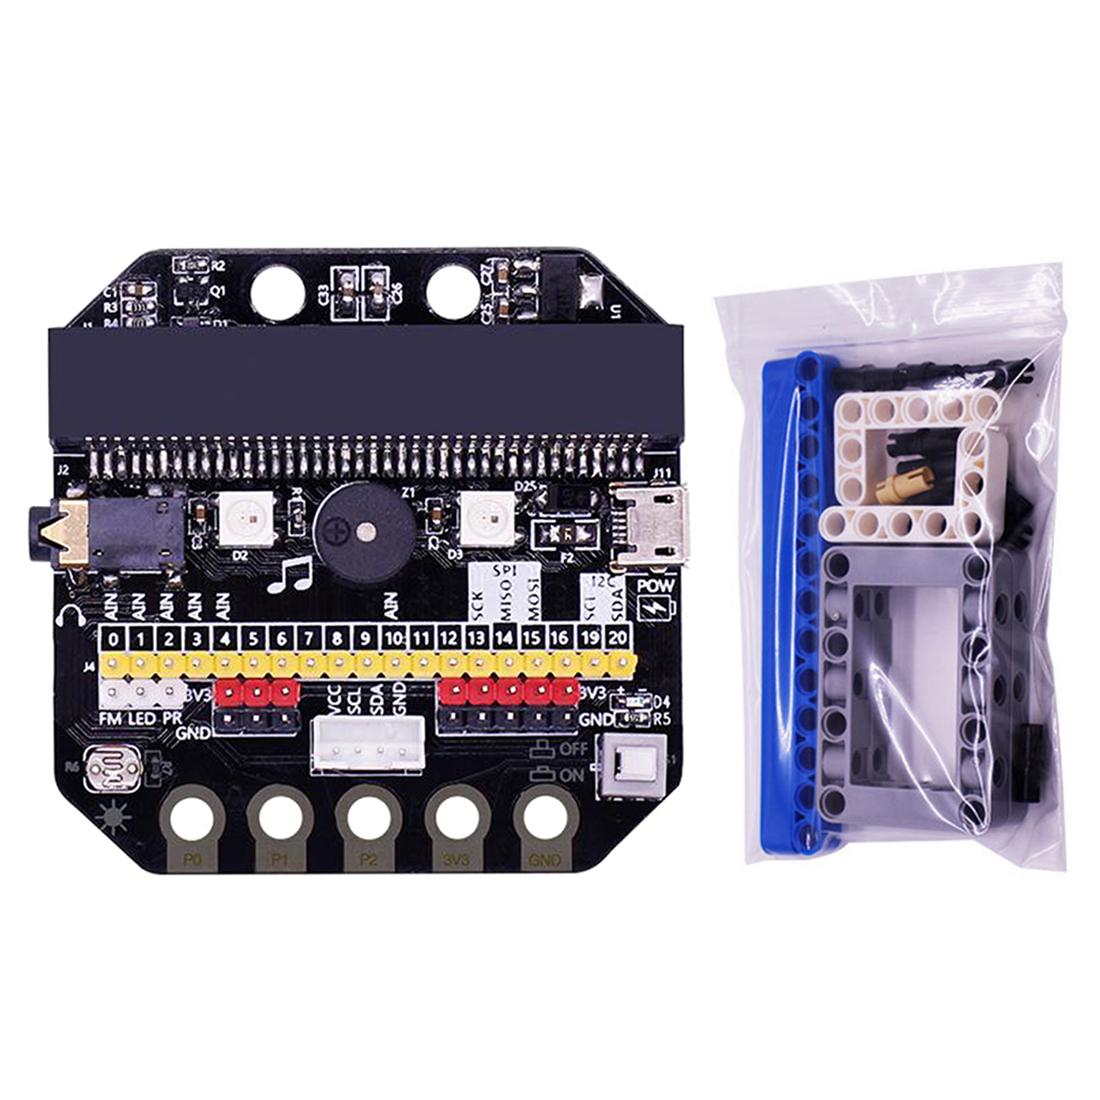 Hot Basic:Bit IO Expansion Board Horizontal Type Pinboard Microbit Python Development Board With Building Block Expansion Pack